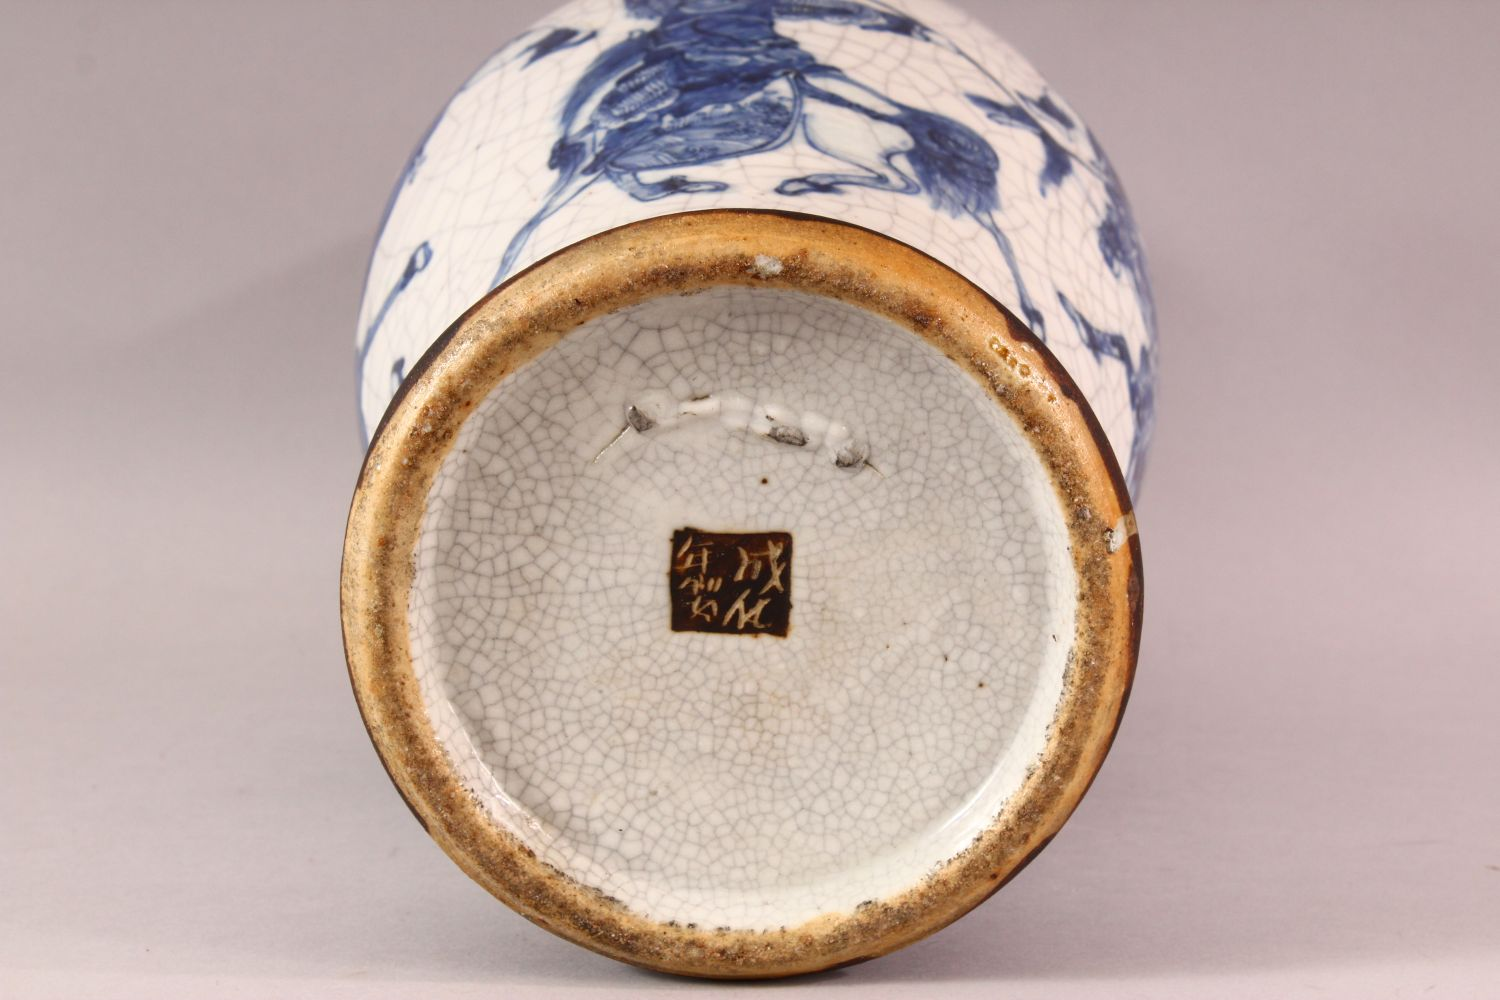 A LARGE 19TH CENTURY CHINESE BLUE & WHITE PORCELAIN VASE, decorated with scenes of warriors , with - Image 7 of 8